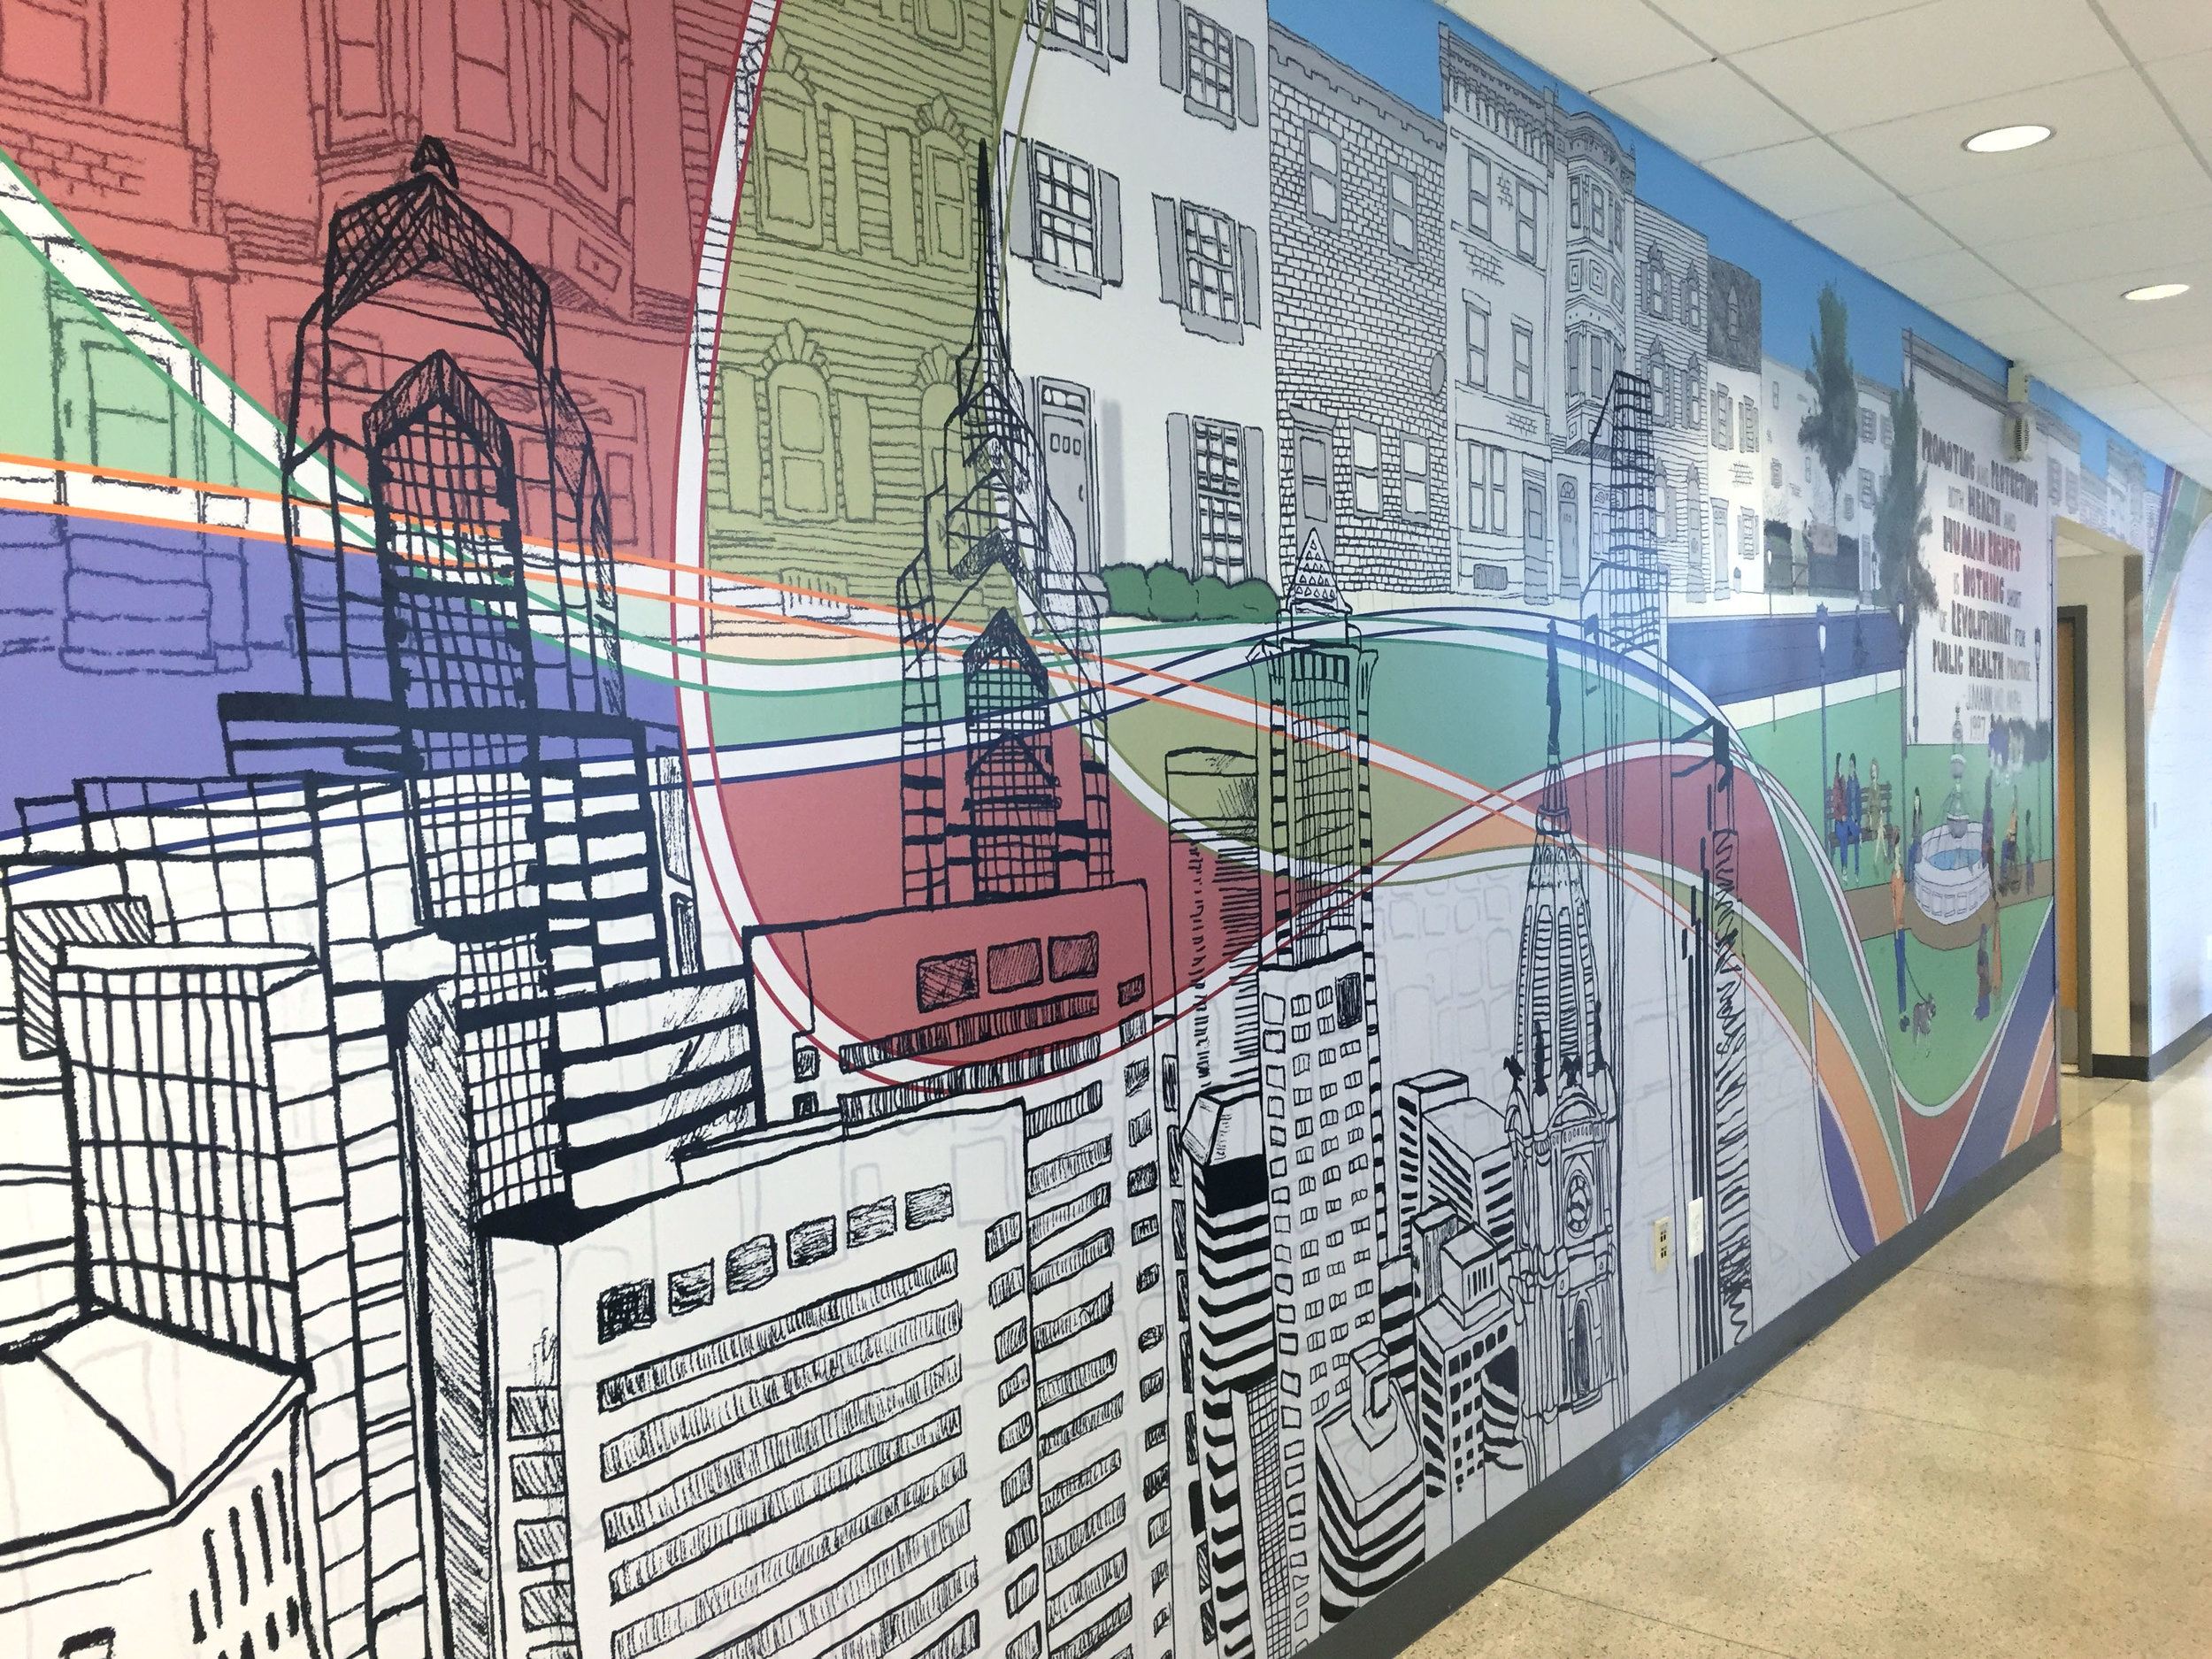 Drexel School of Public Health Mural